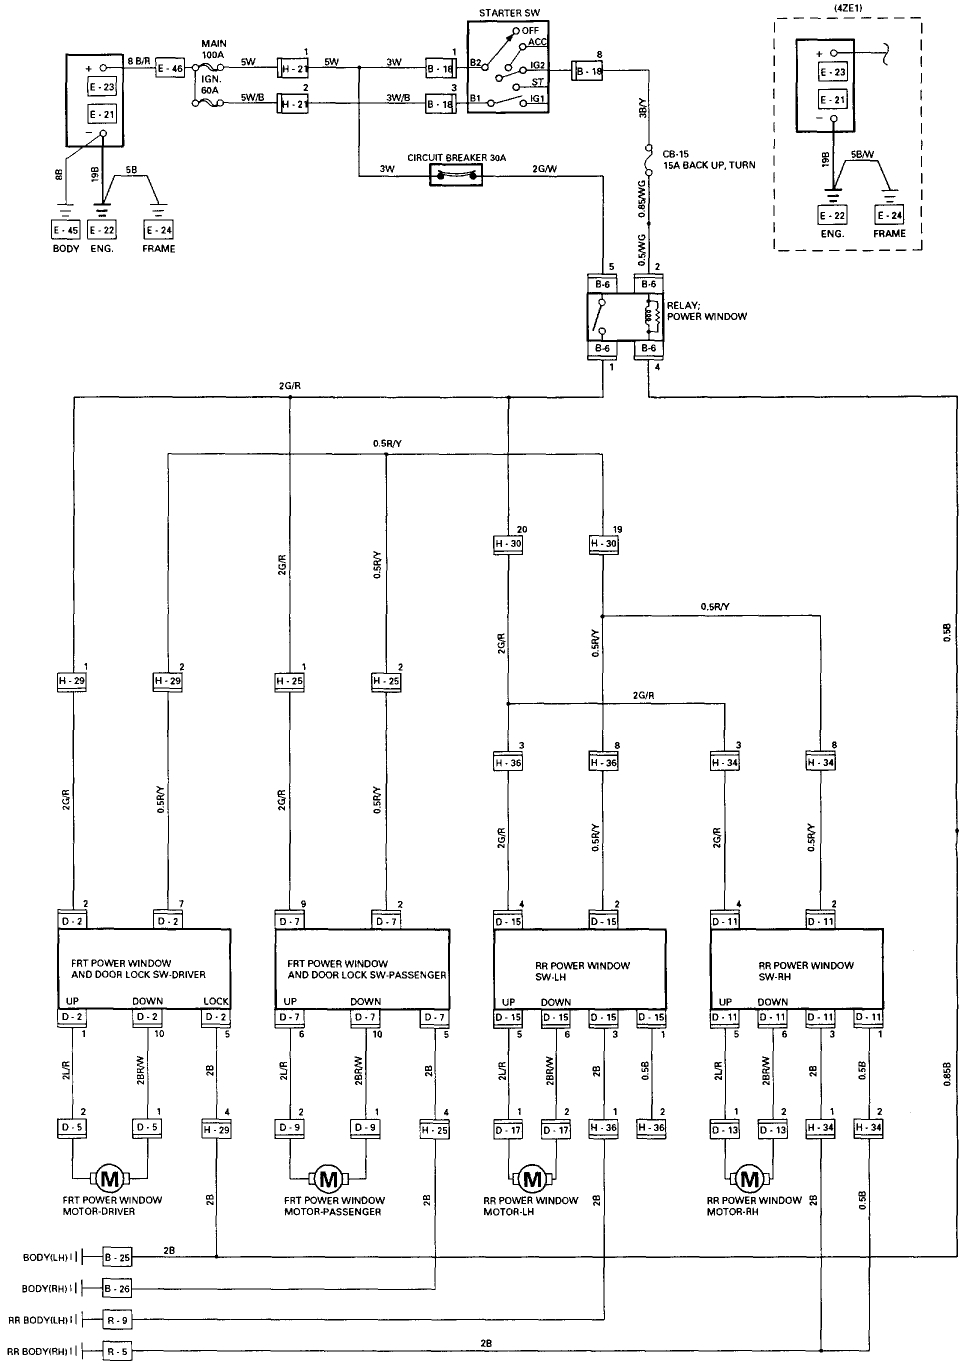 2001 Olds Alero Power Window Switch Wiring Diagram  F3e7bc